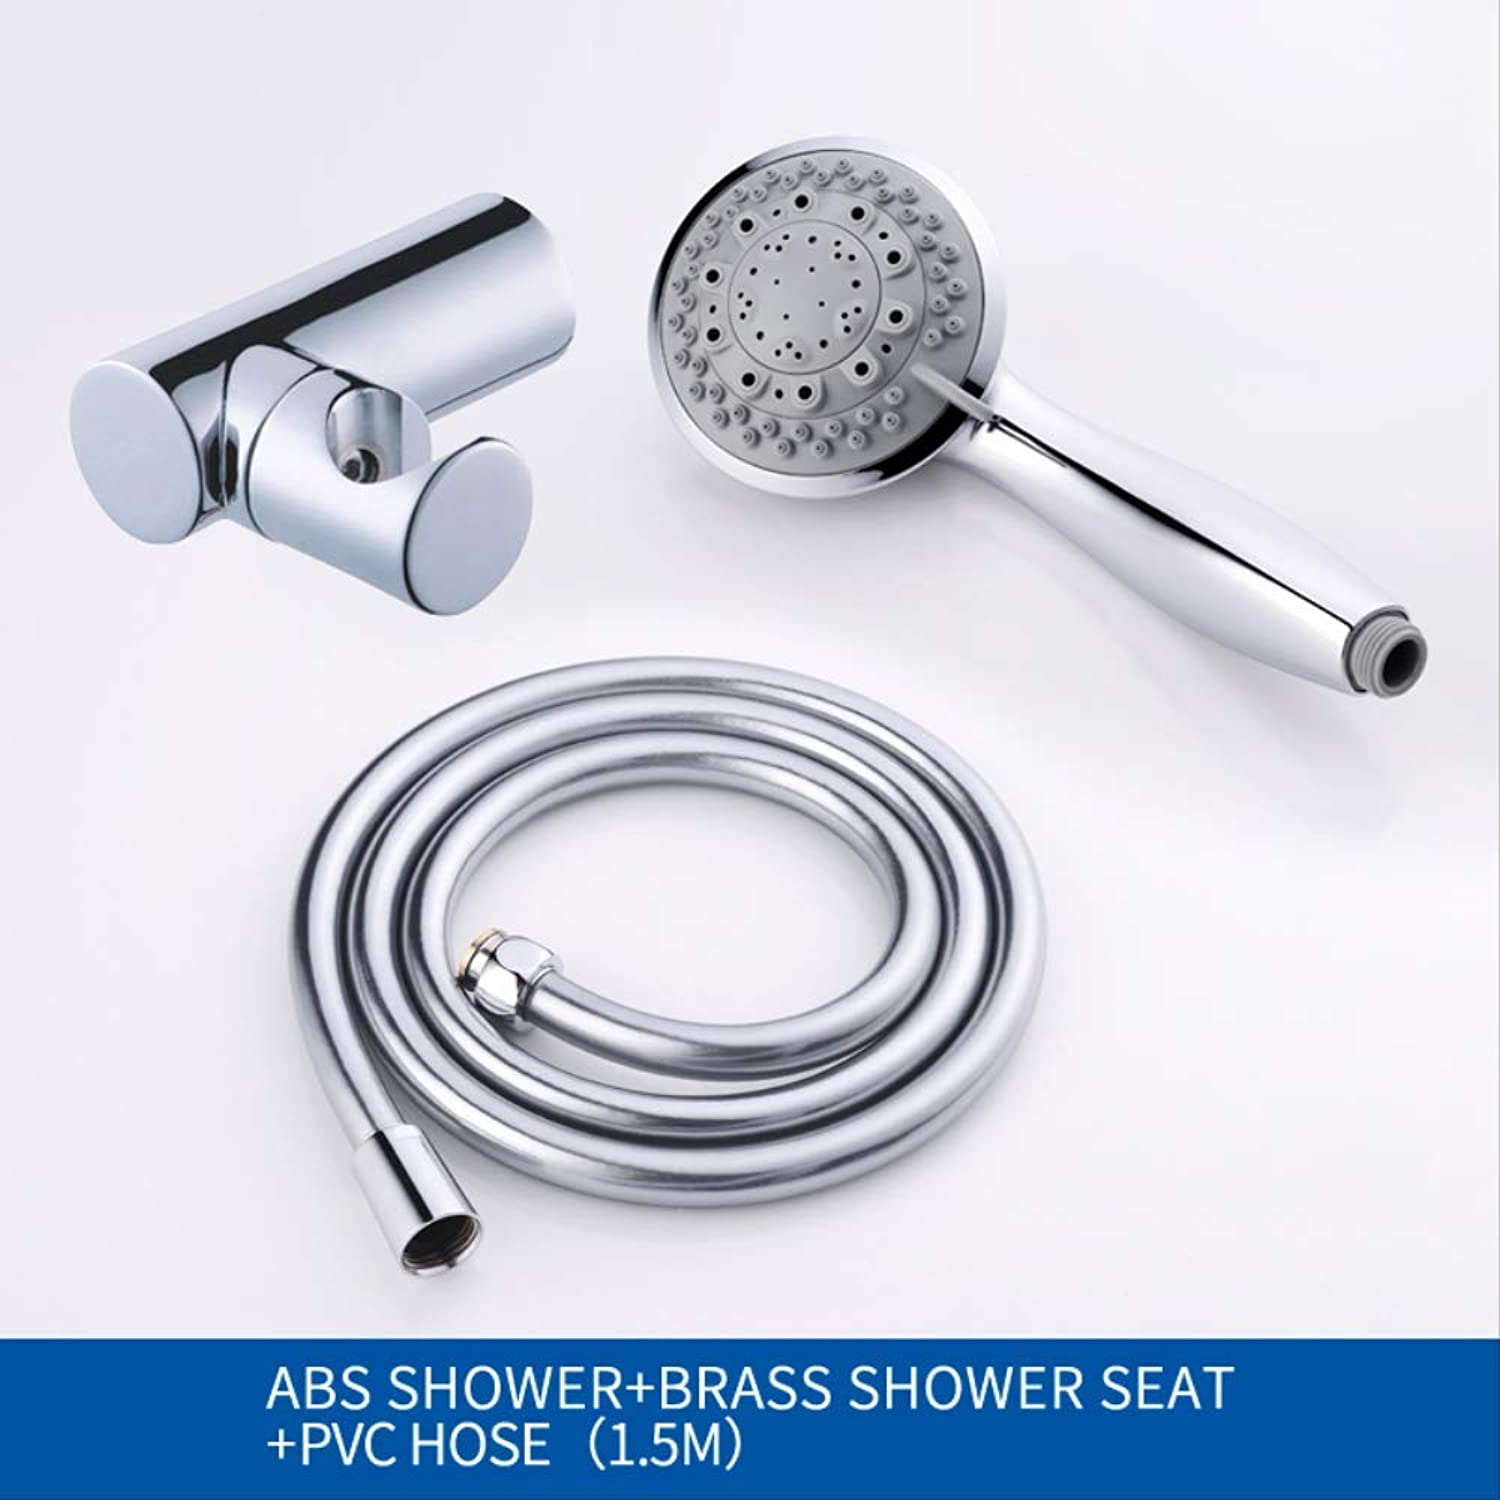 OHKJ Shower Head 7 Modes Hand Hold Shower Set Chrome Chrome Chrome Plated Rain Shower Head Brass Holder And His Fashion bfaa13